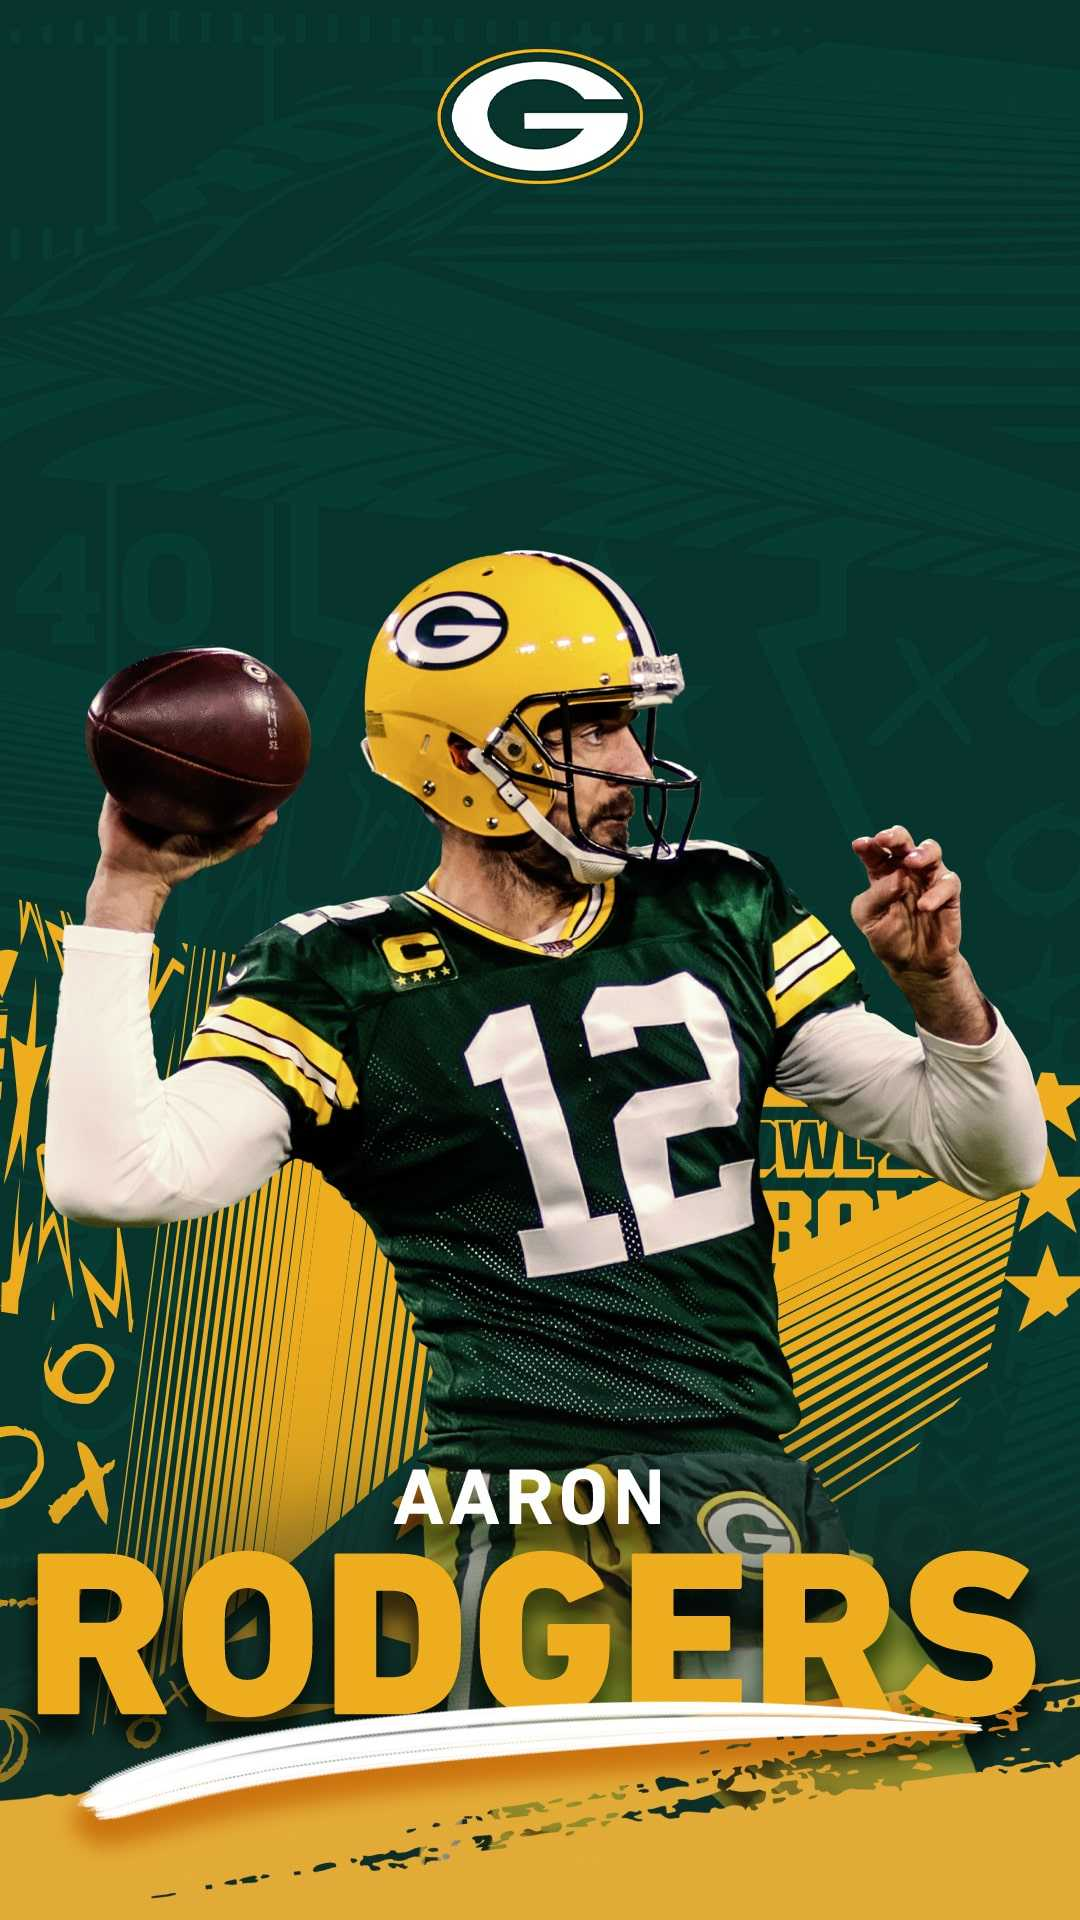 Wallpaper Aaron Rodgers